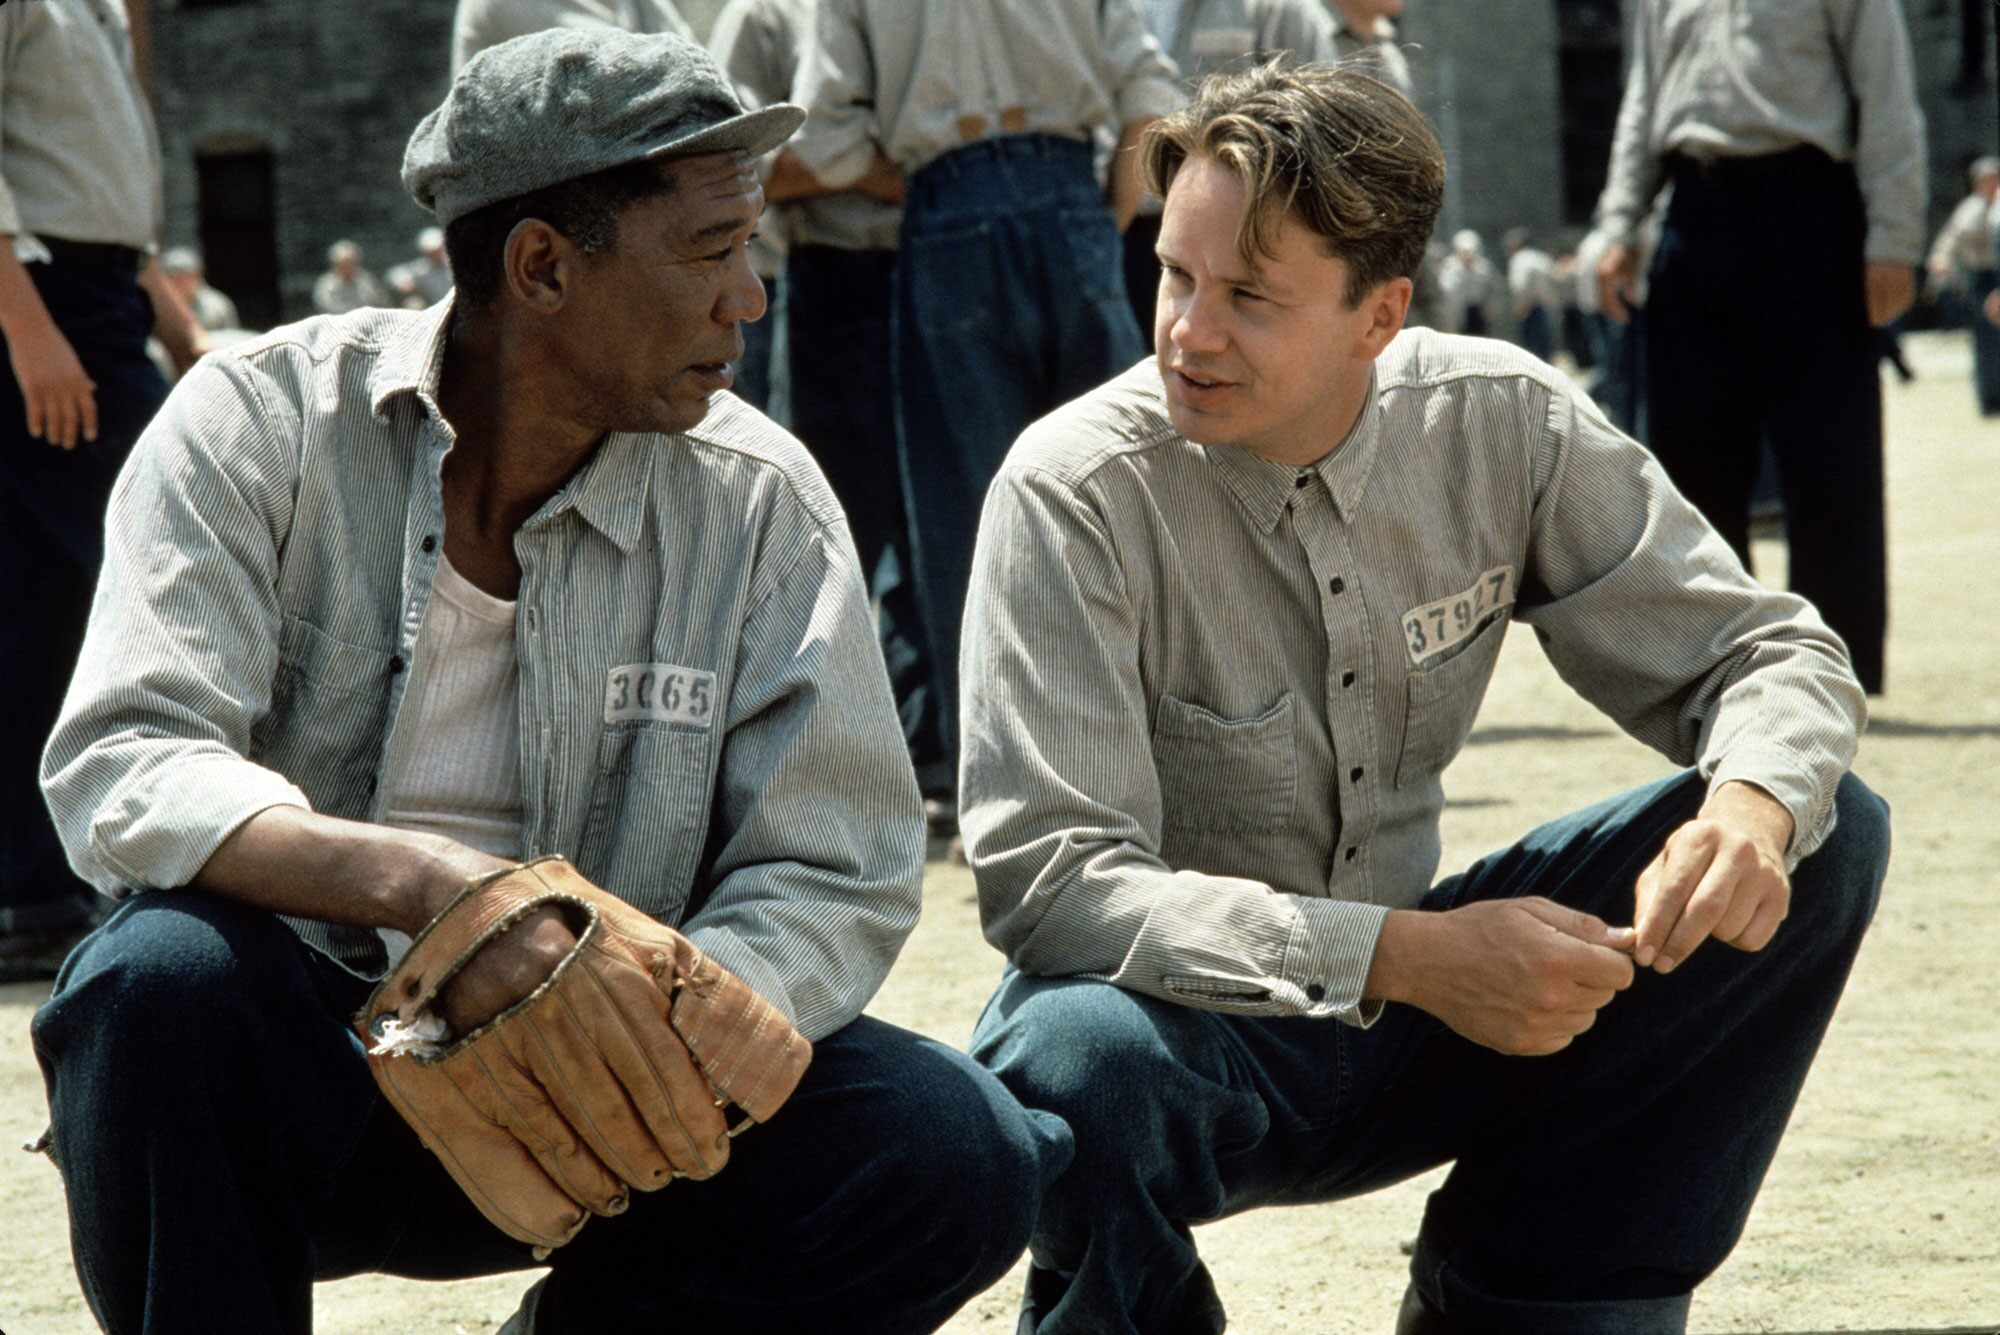 an analysis of the topic of the movie shawshank redemption by frank darabont